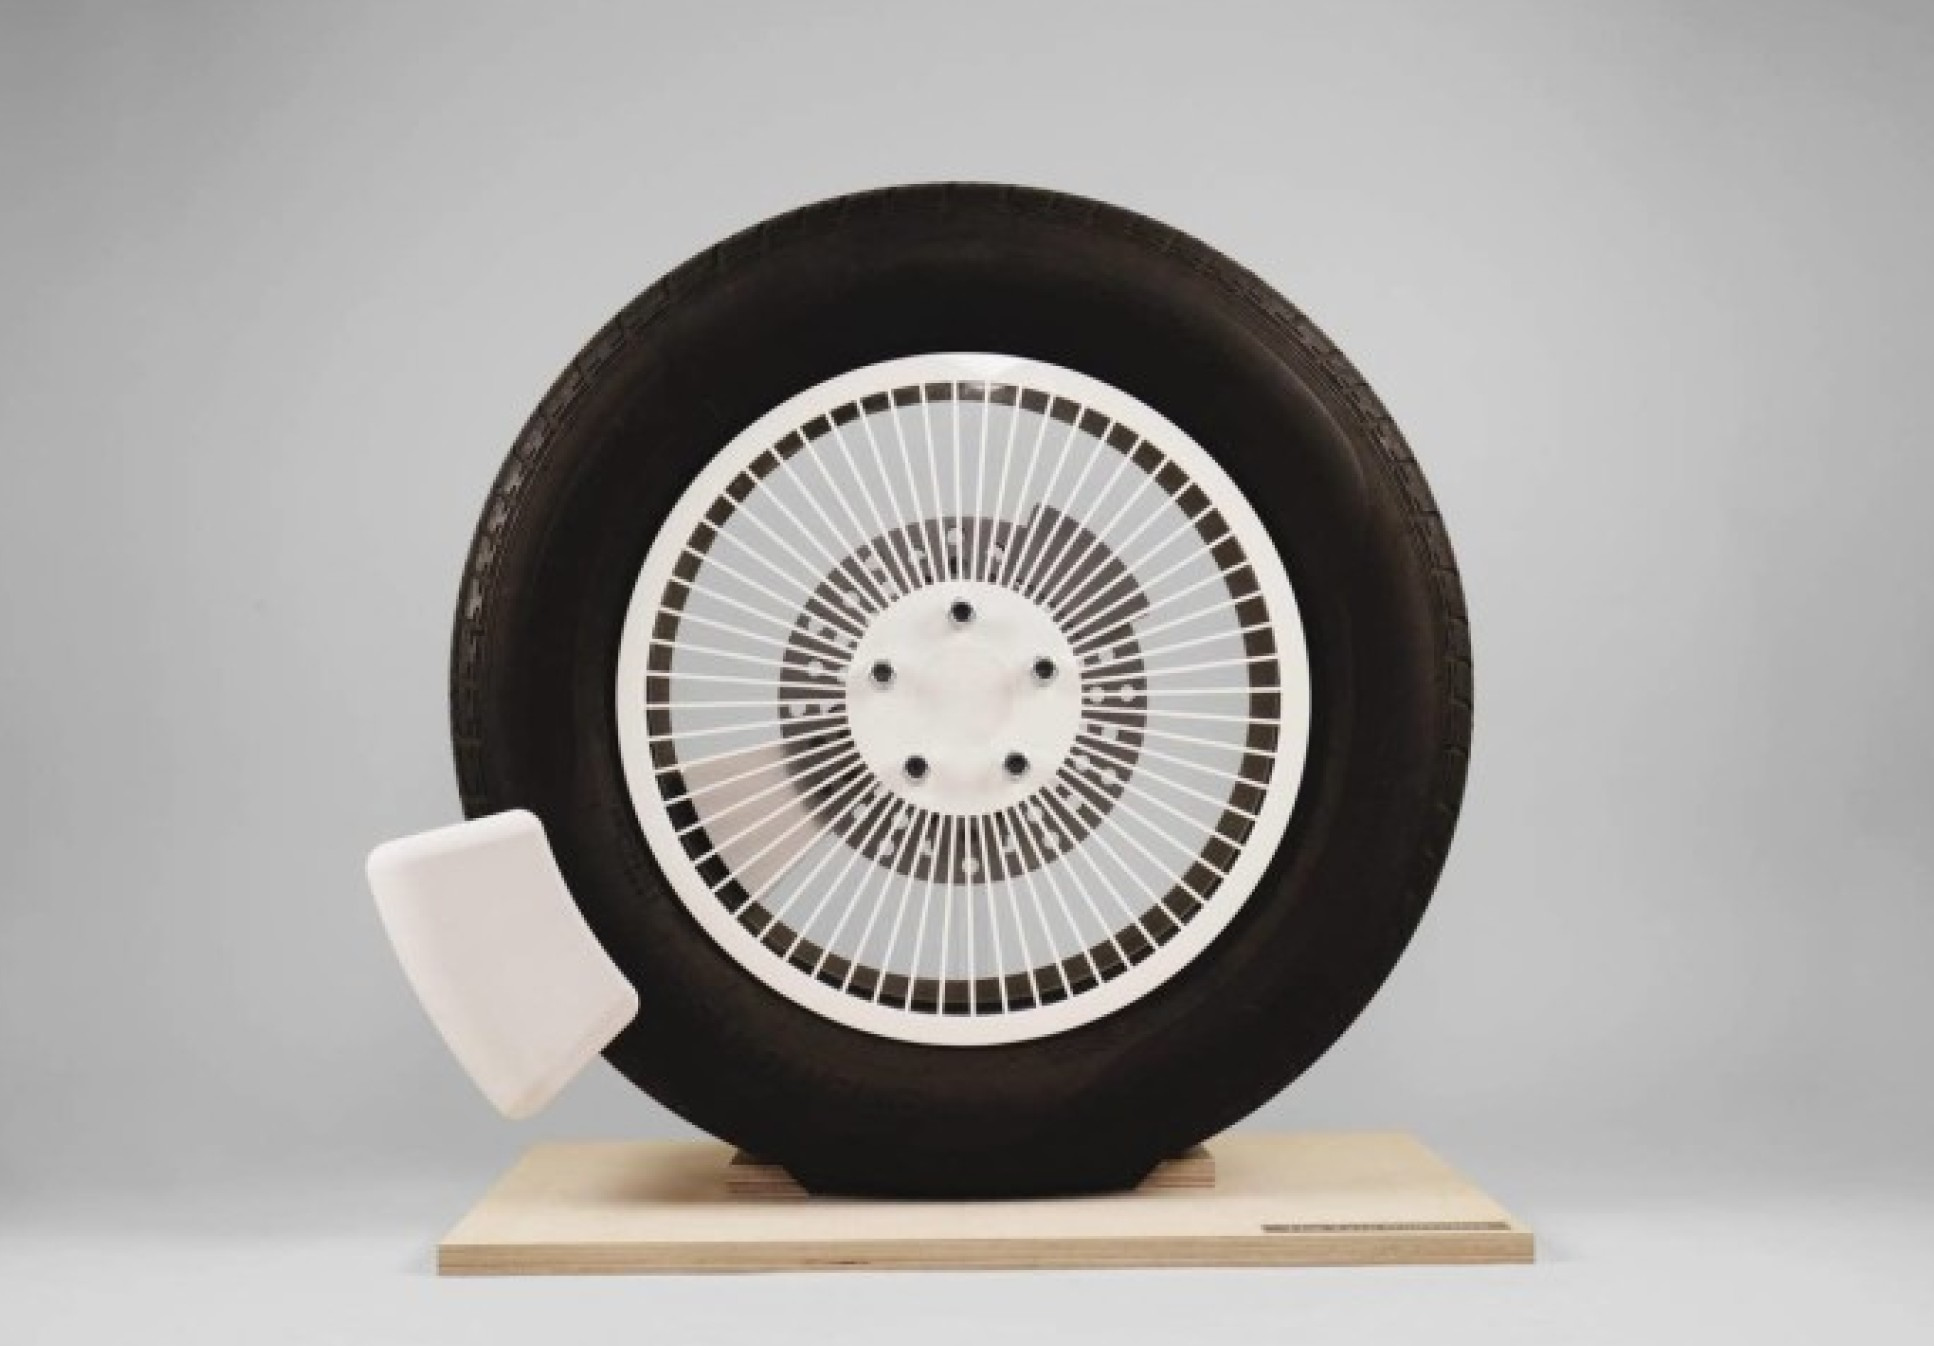 The Tyre Collective's wheel device